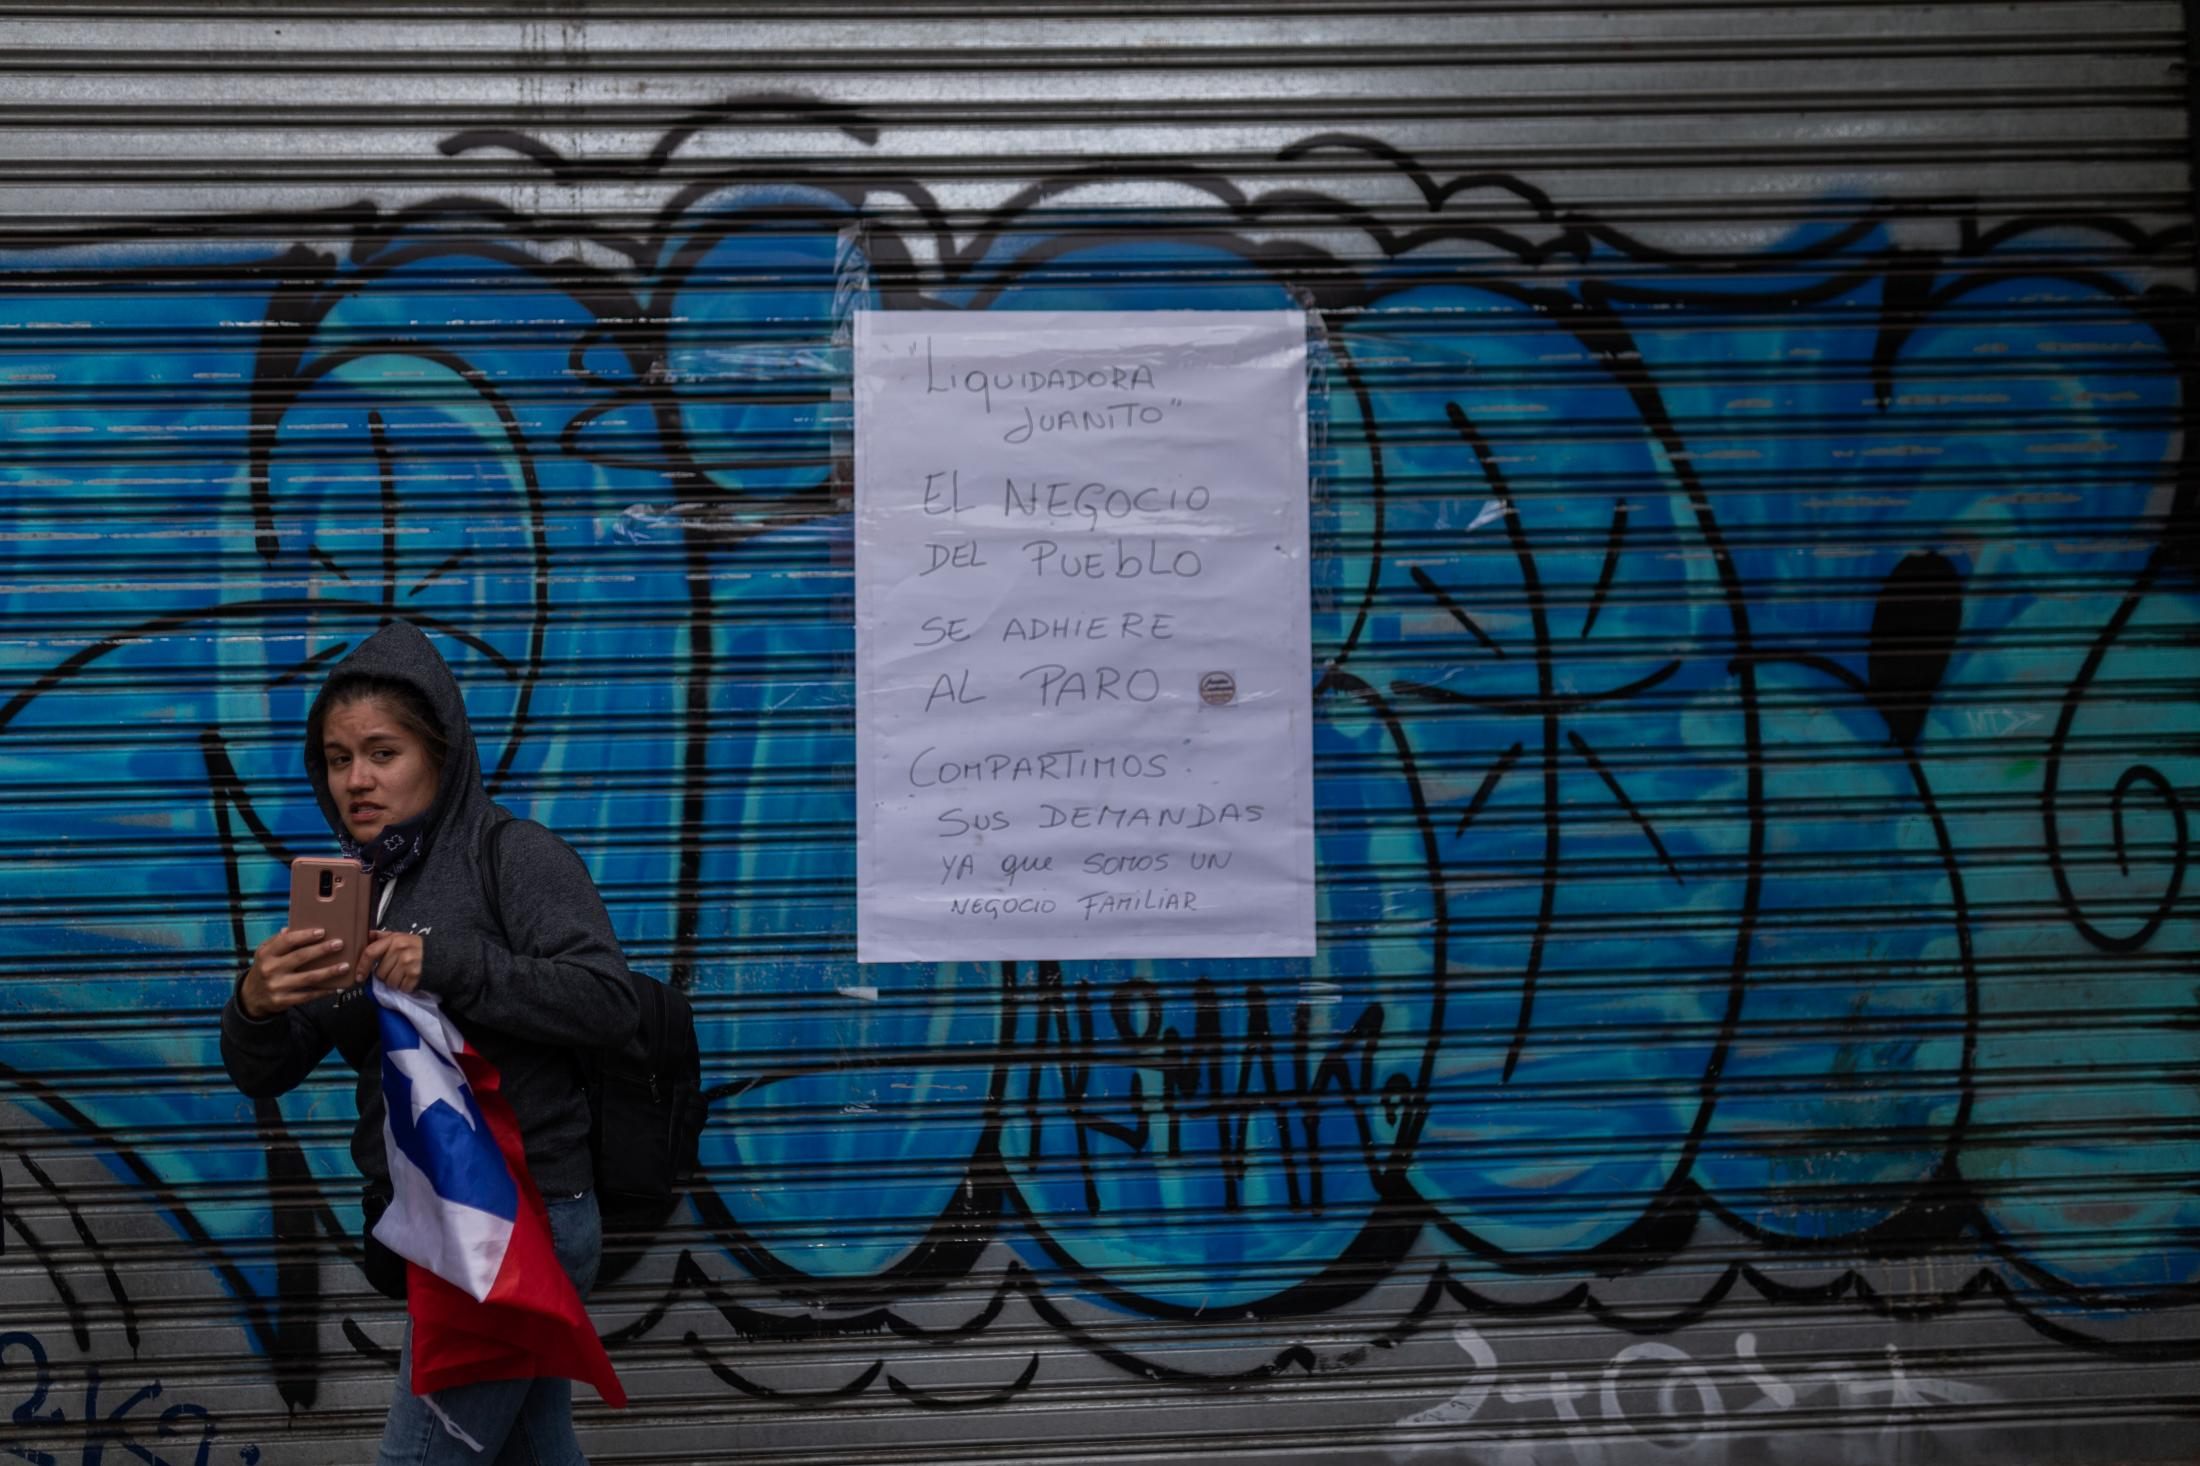 November 12, 2019. A woman records clashes between police and protesters during a day of protest in Valparaíso, Chile.